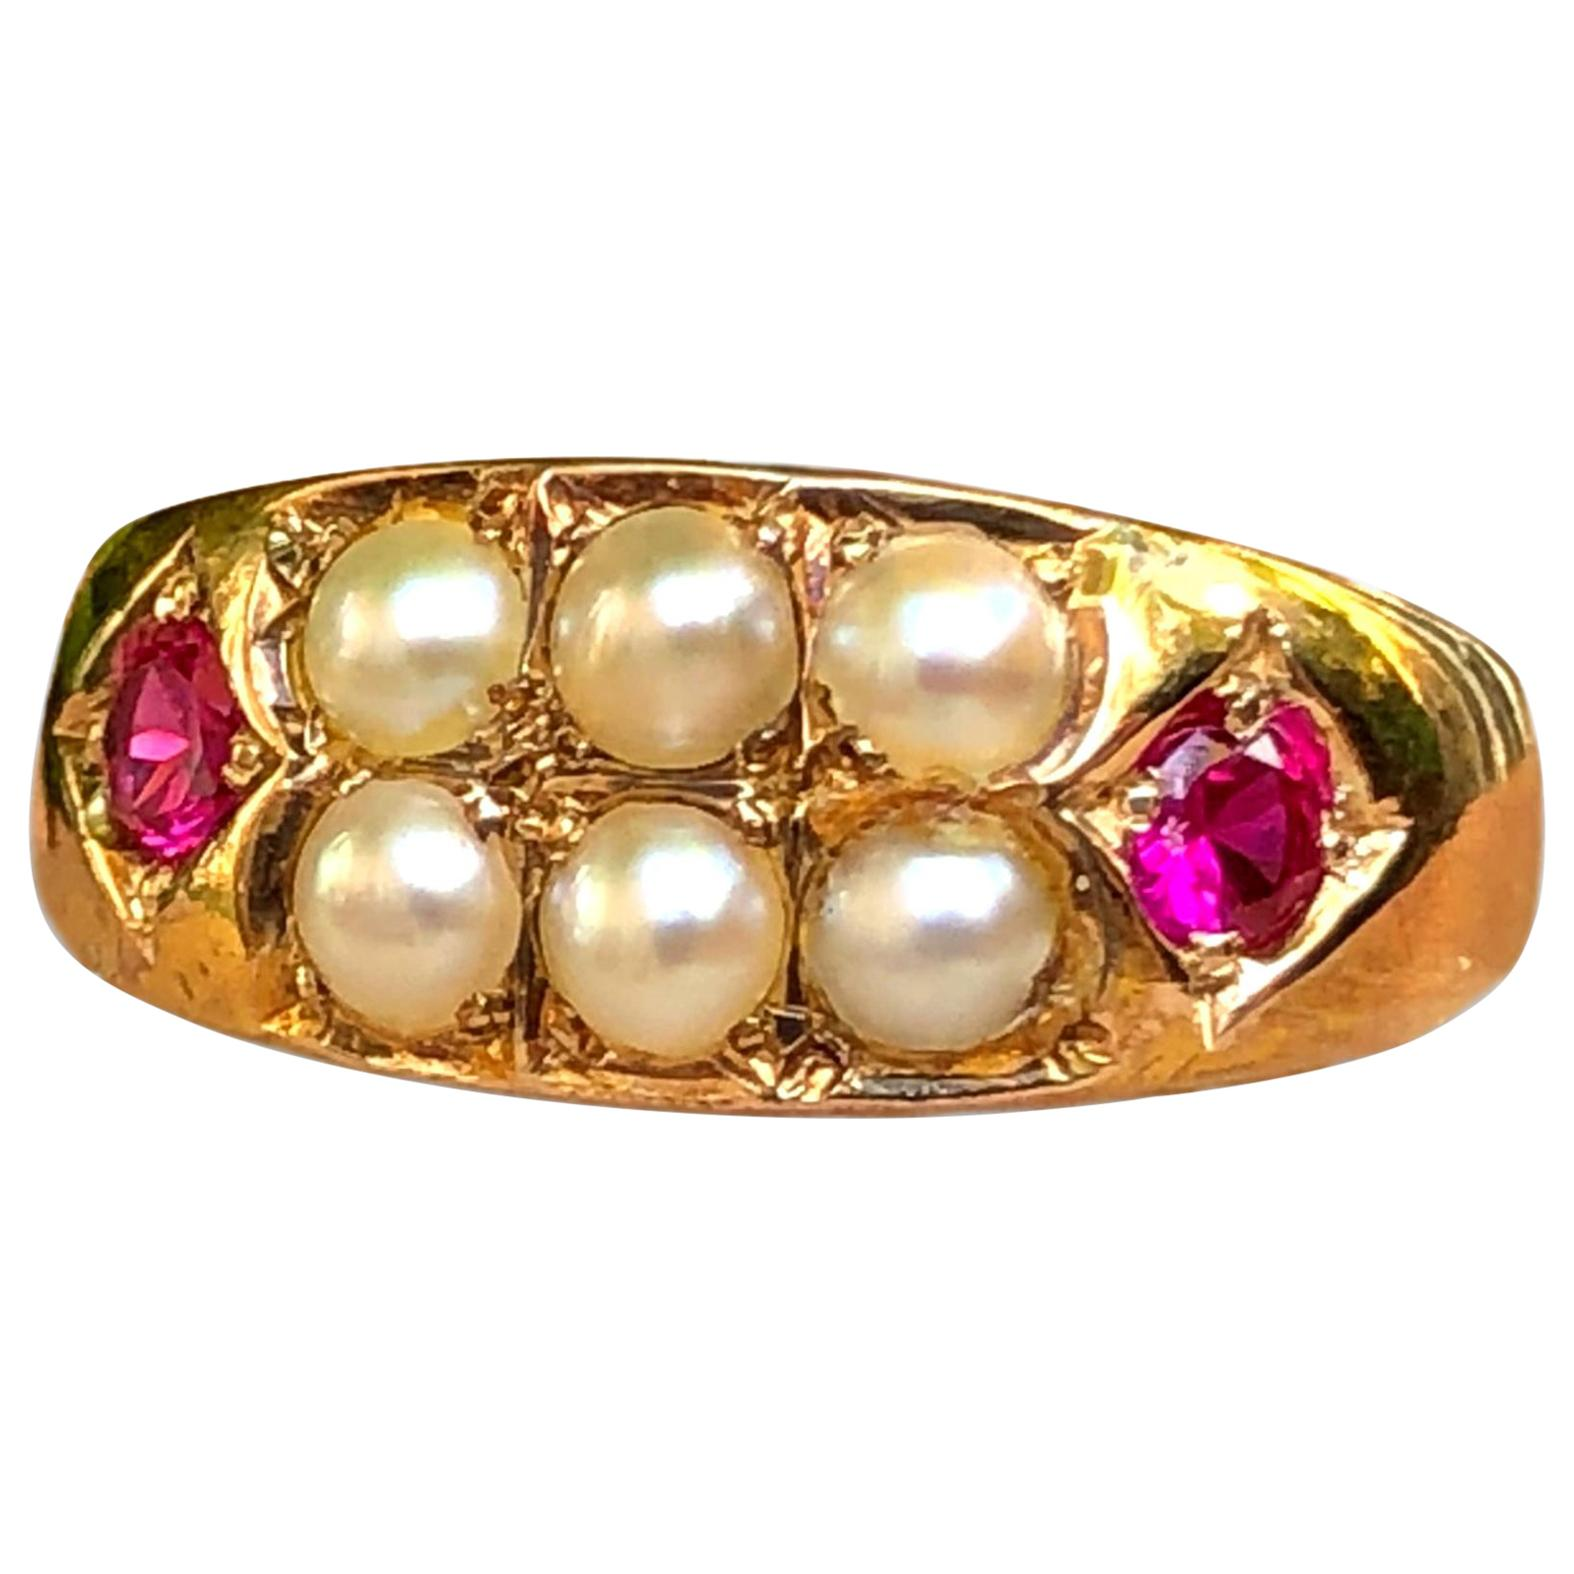 Victorian 15 Karat Gold Ruby and Pearl Antique Ring